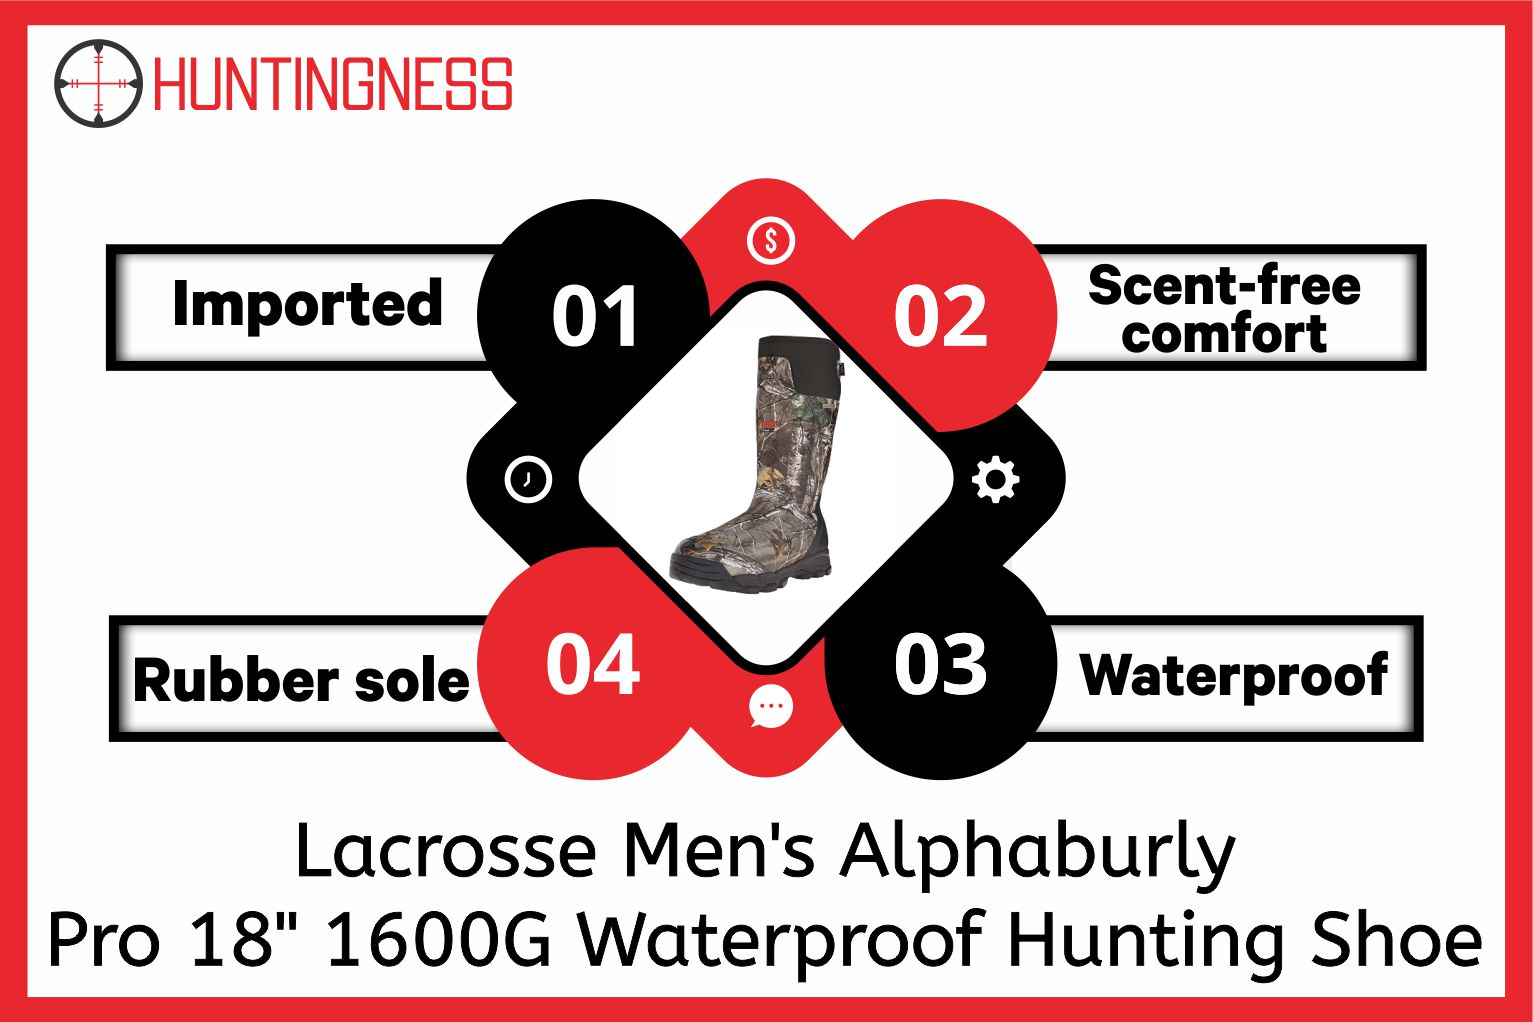 LaCrosse Men's Alphaburly - Best Hunting Boots for Snow infographic